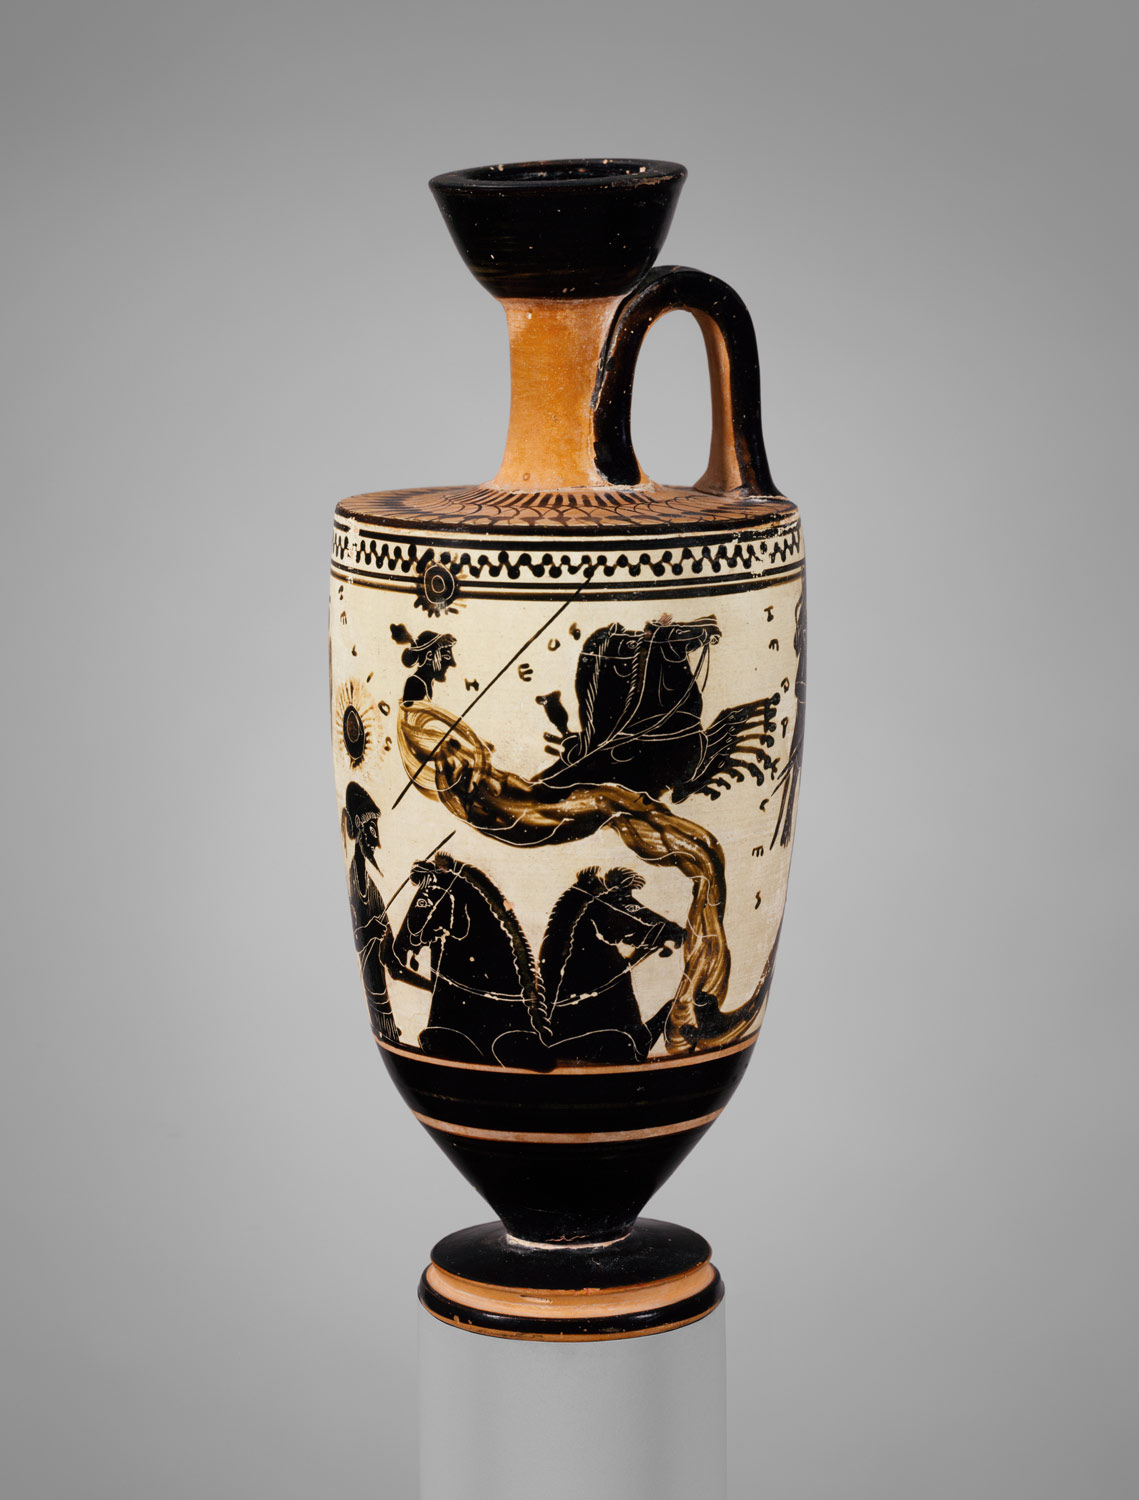 the labors of herakles essay heilbrunn timeline of art history terracotta lekythos oil flask